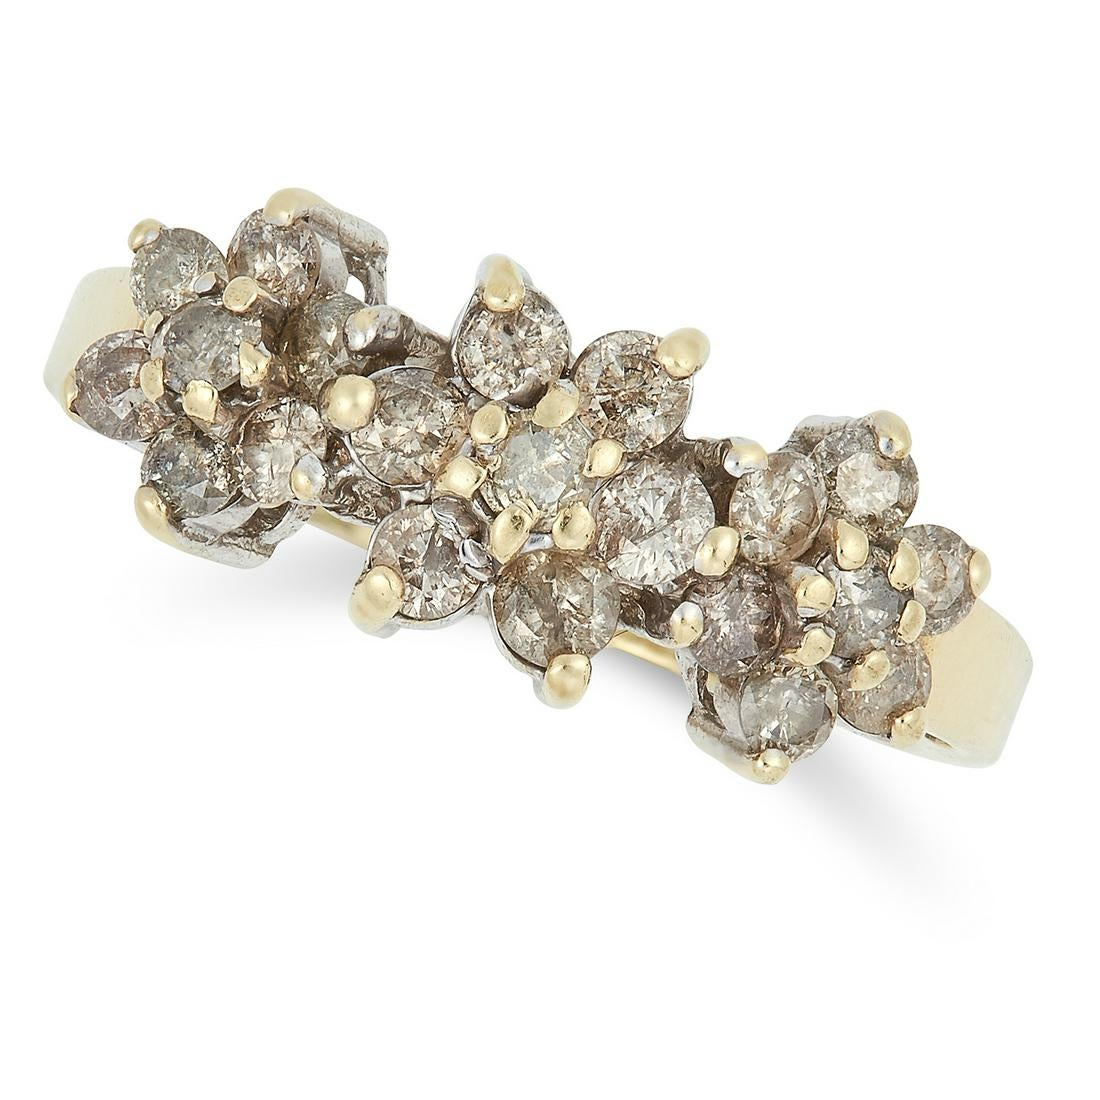 Los 51 - DIAMOND CLUSTER RING set with three clusters of round cut diamonds, size N / 6.5, 3.2g.